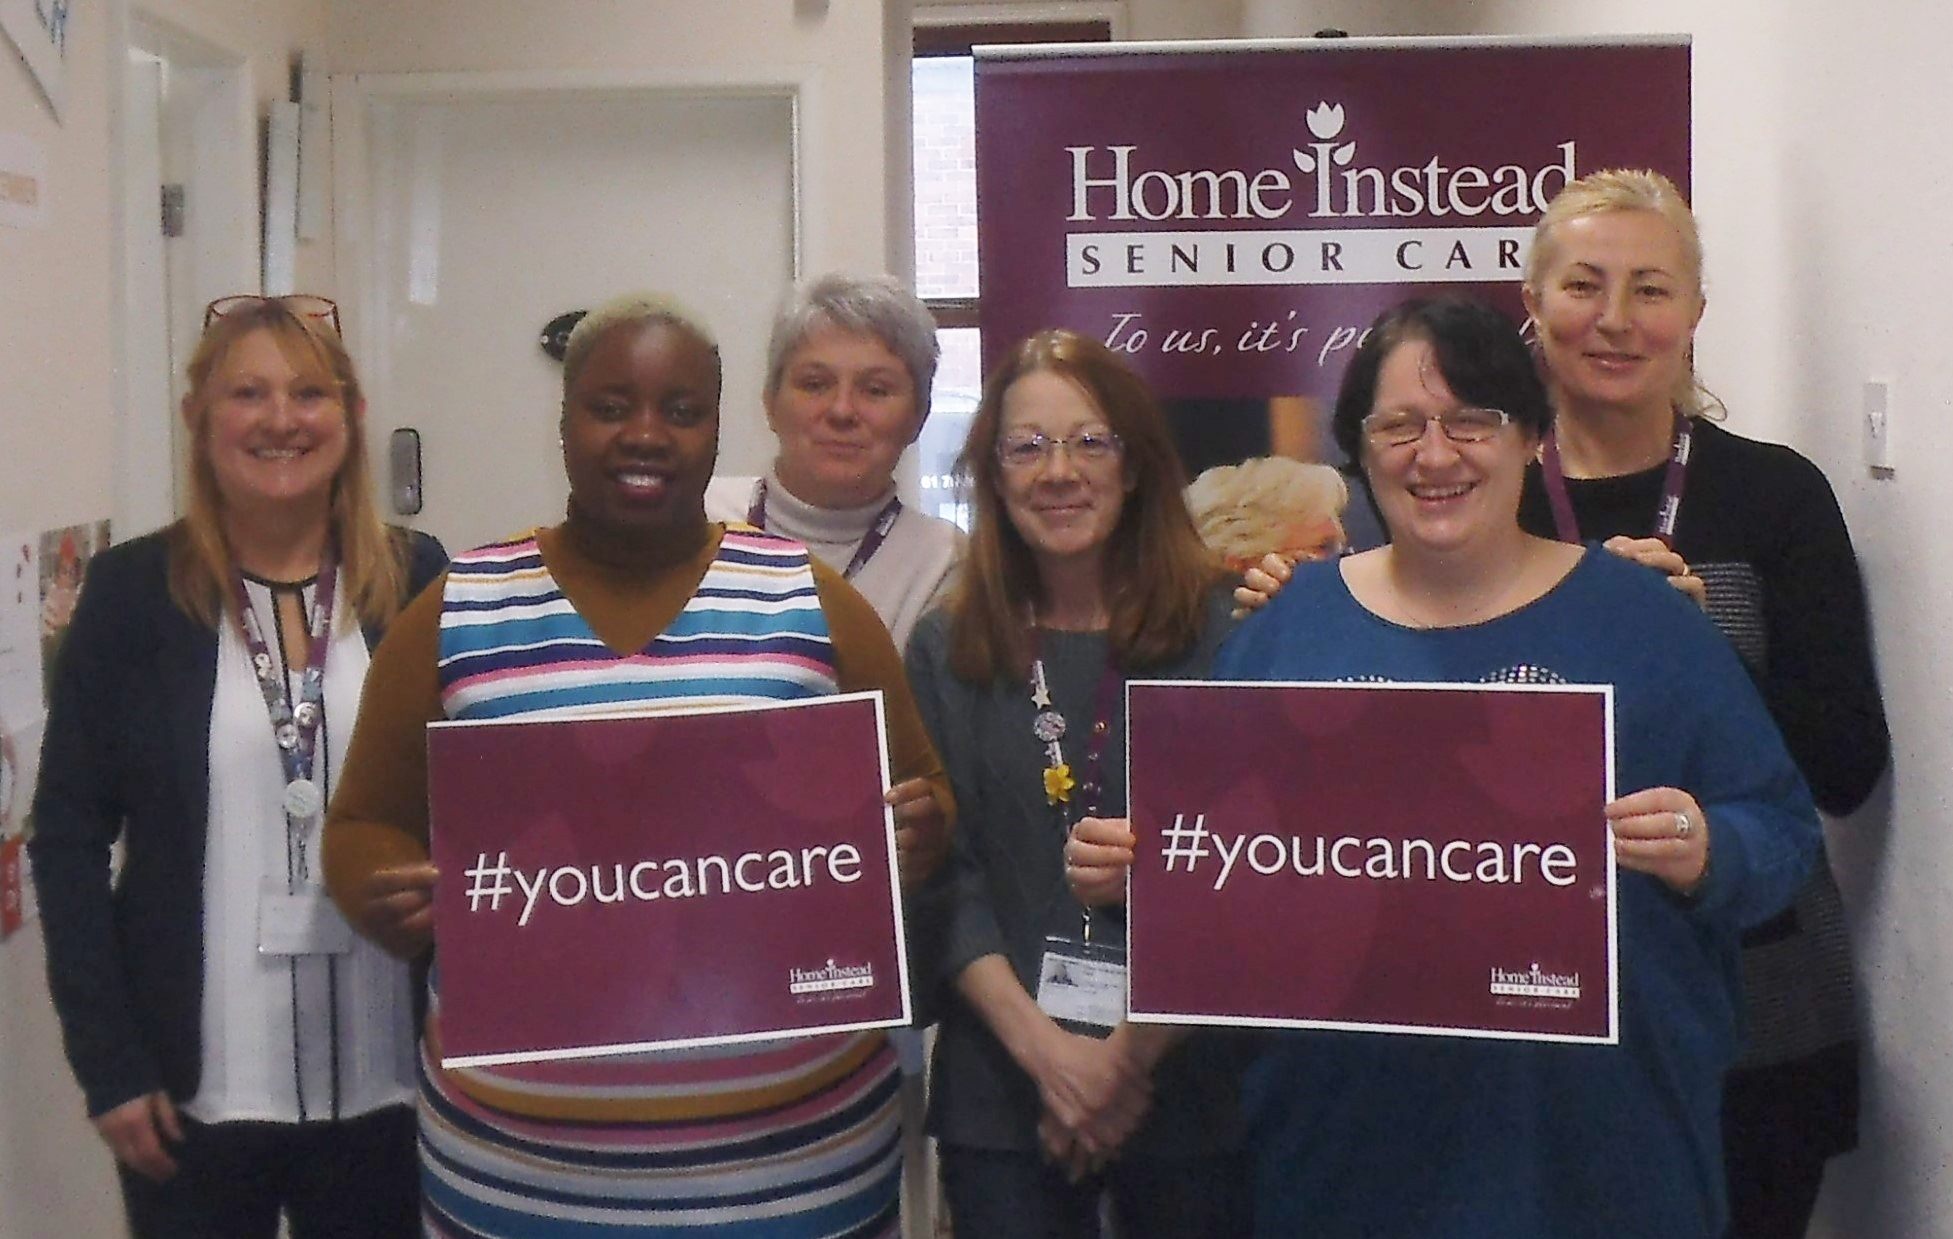 Caroline Allen, Esther Kachingwe, Lisa Hughes, Vicky Ingham, Joanne Carroll & Vera Tsygankova from Home Instead Senior Care supporting #youcancare